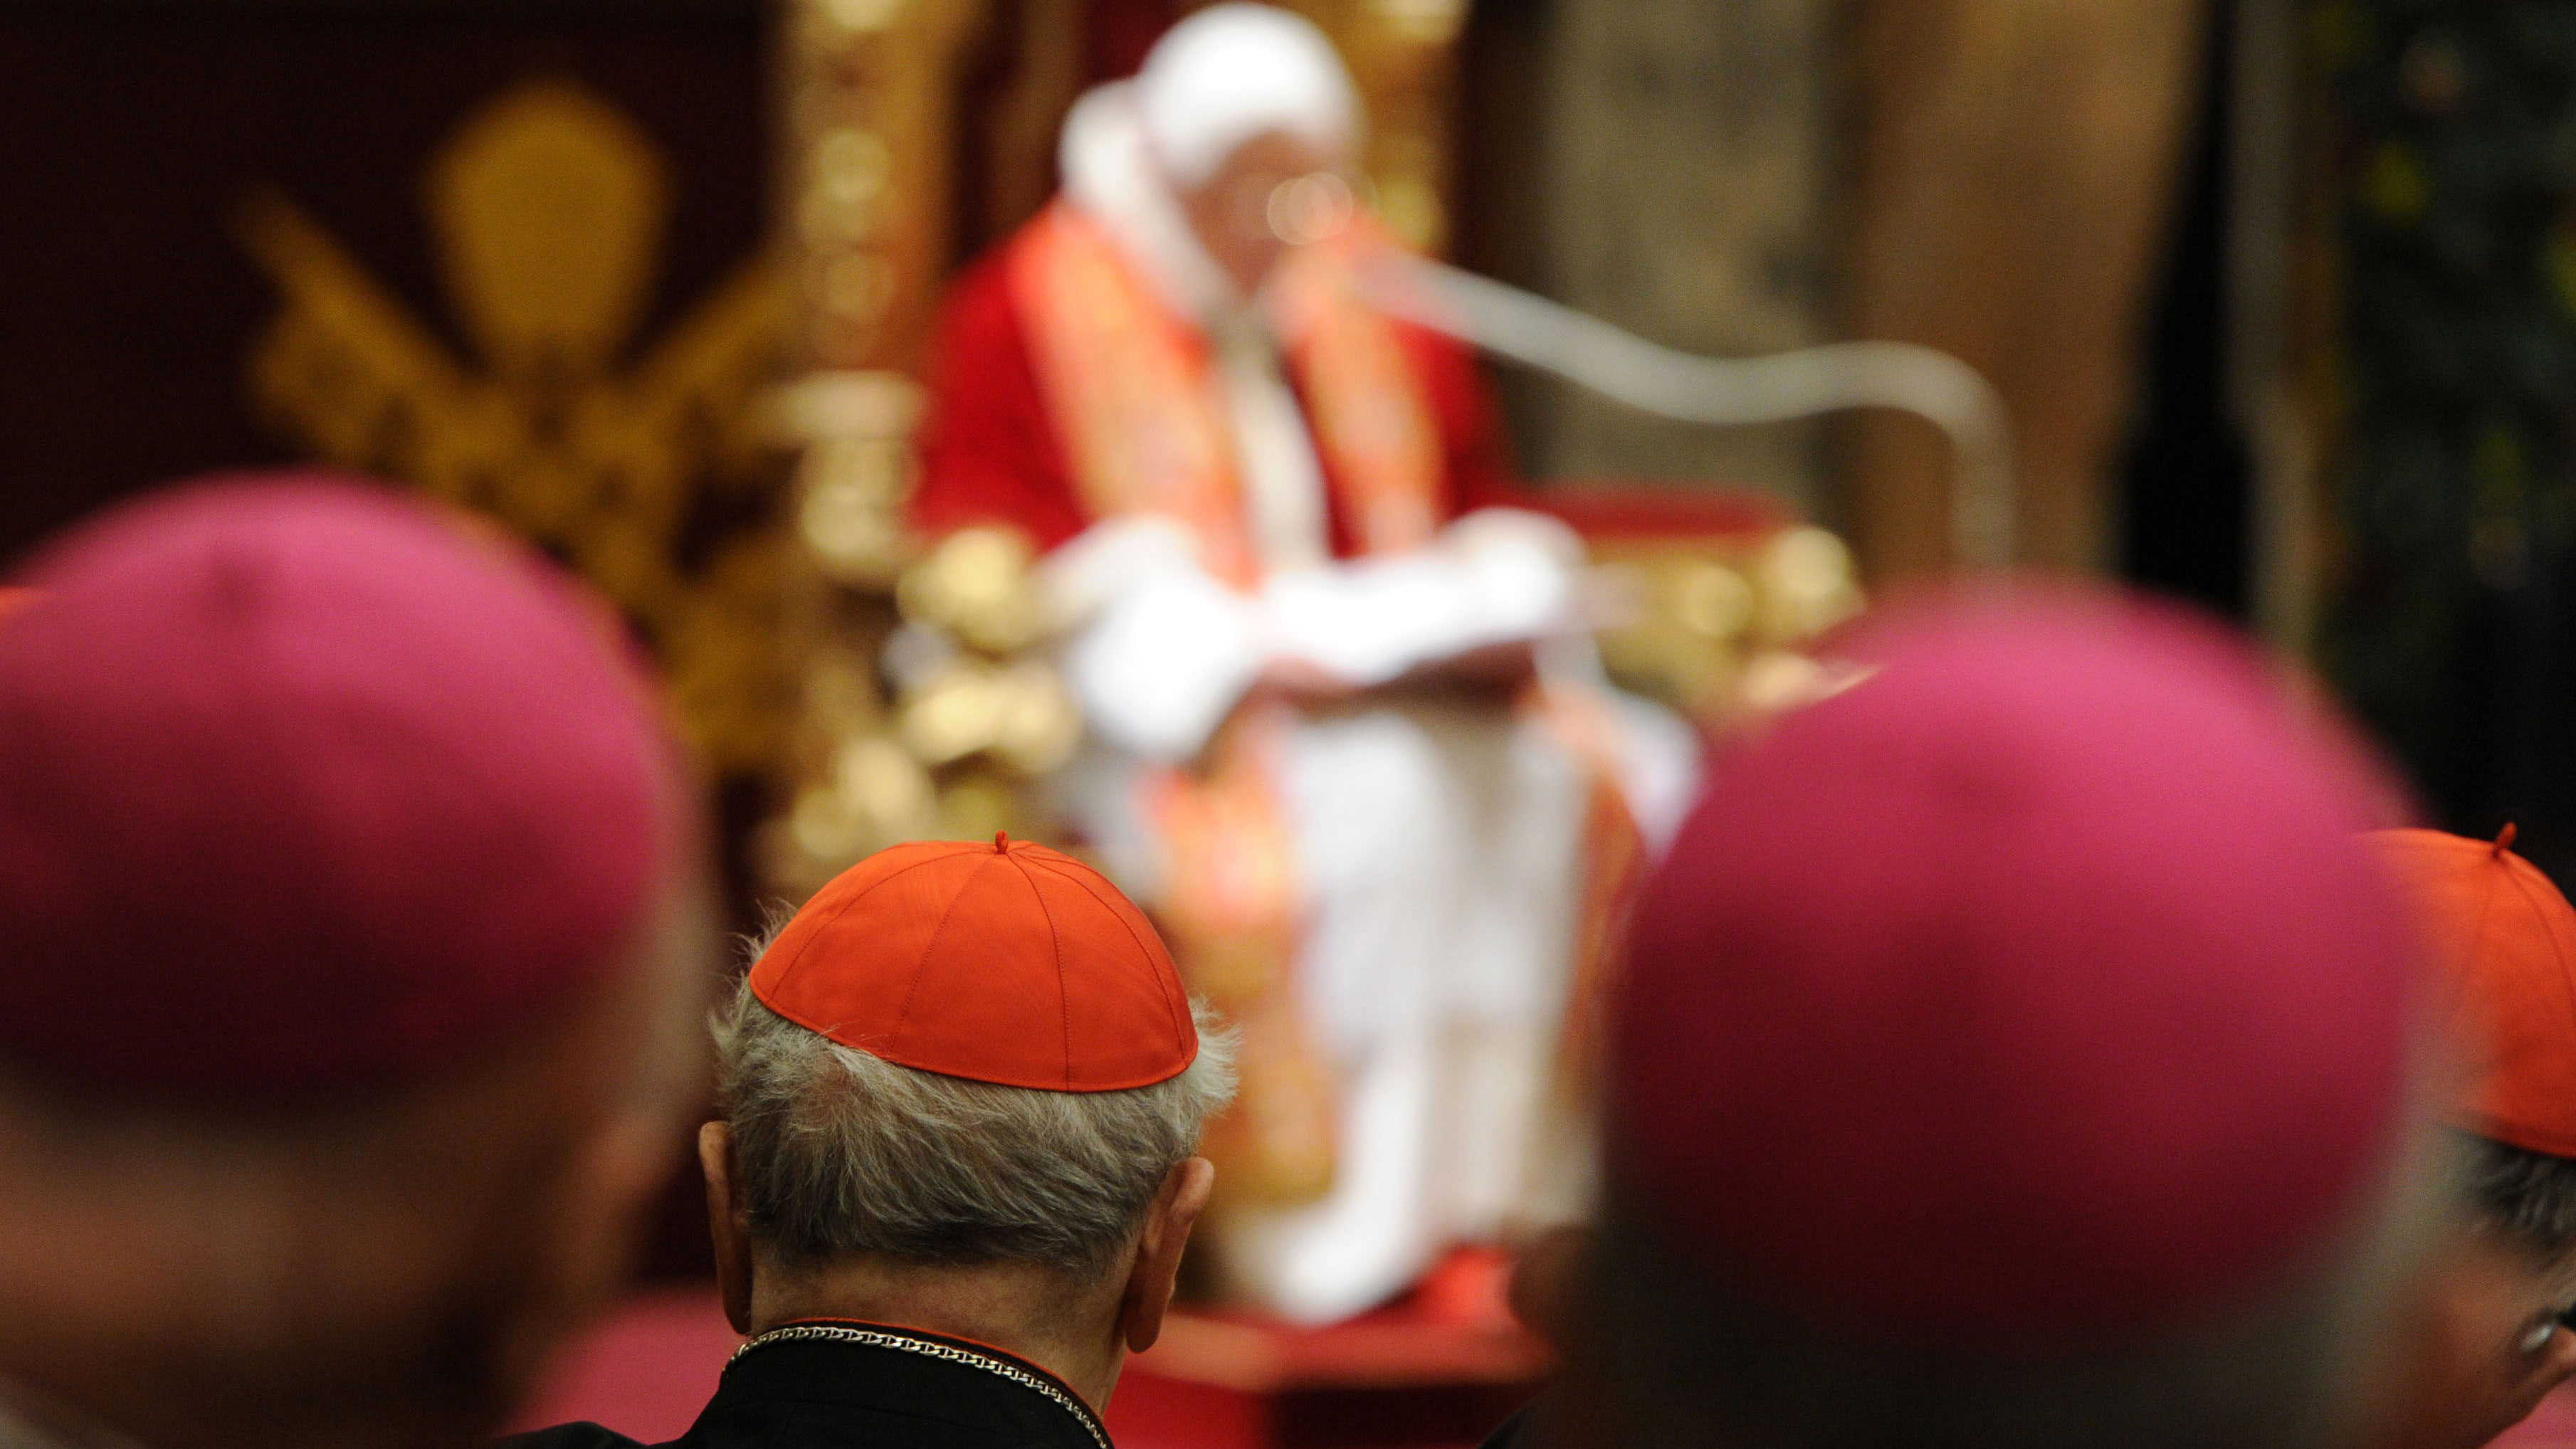 PHOTO:Here, the Pope is shown receiving the Roman Curia.